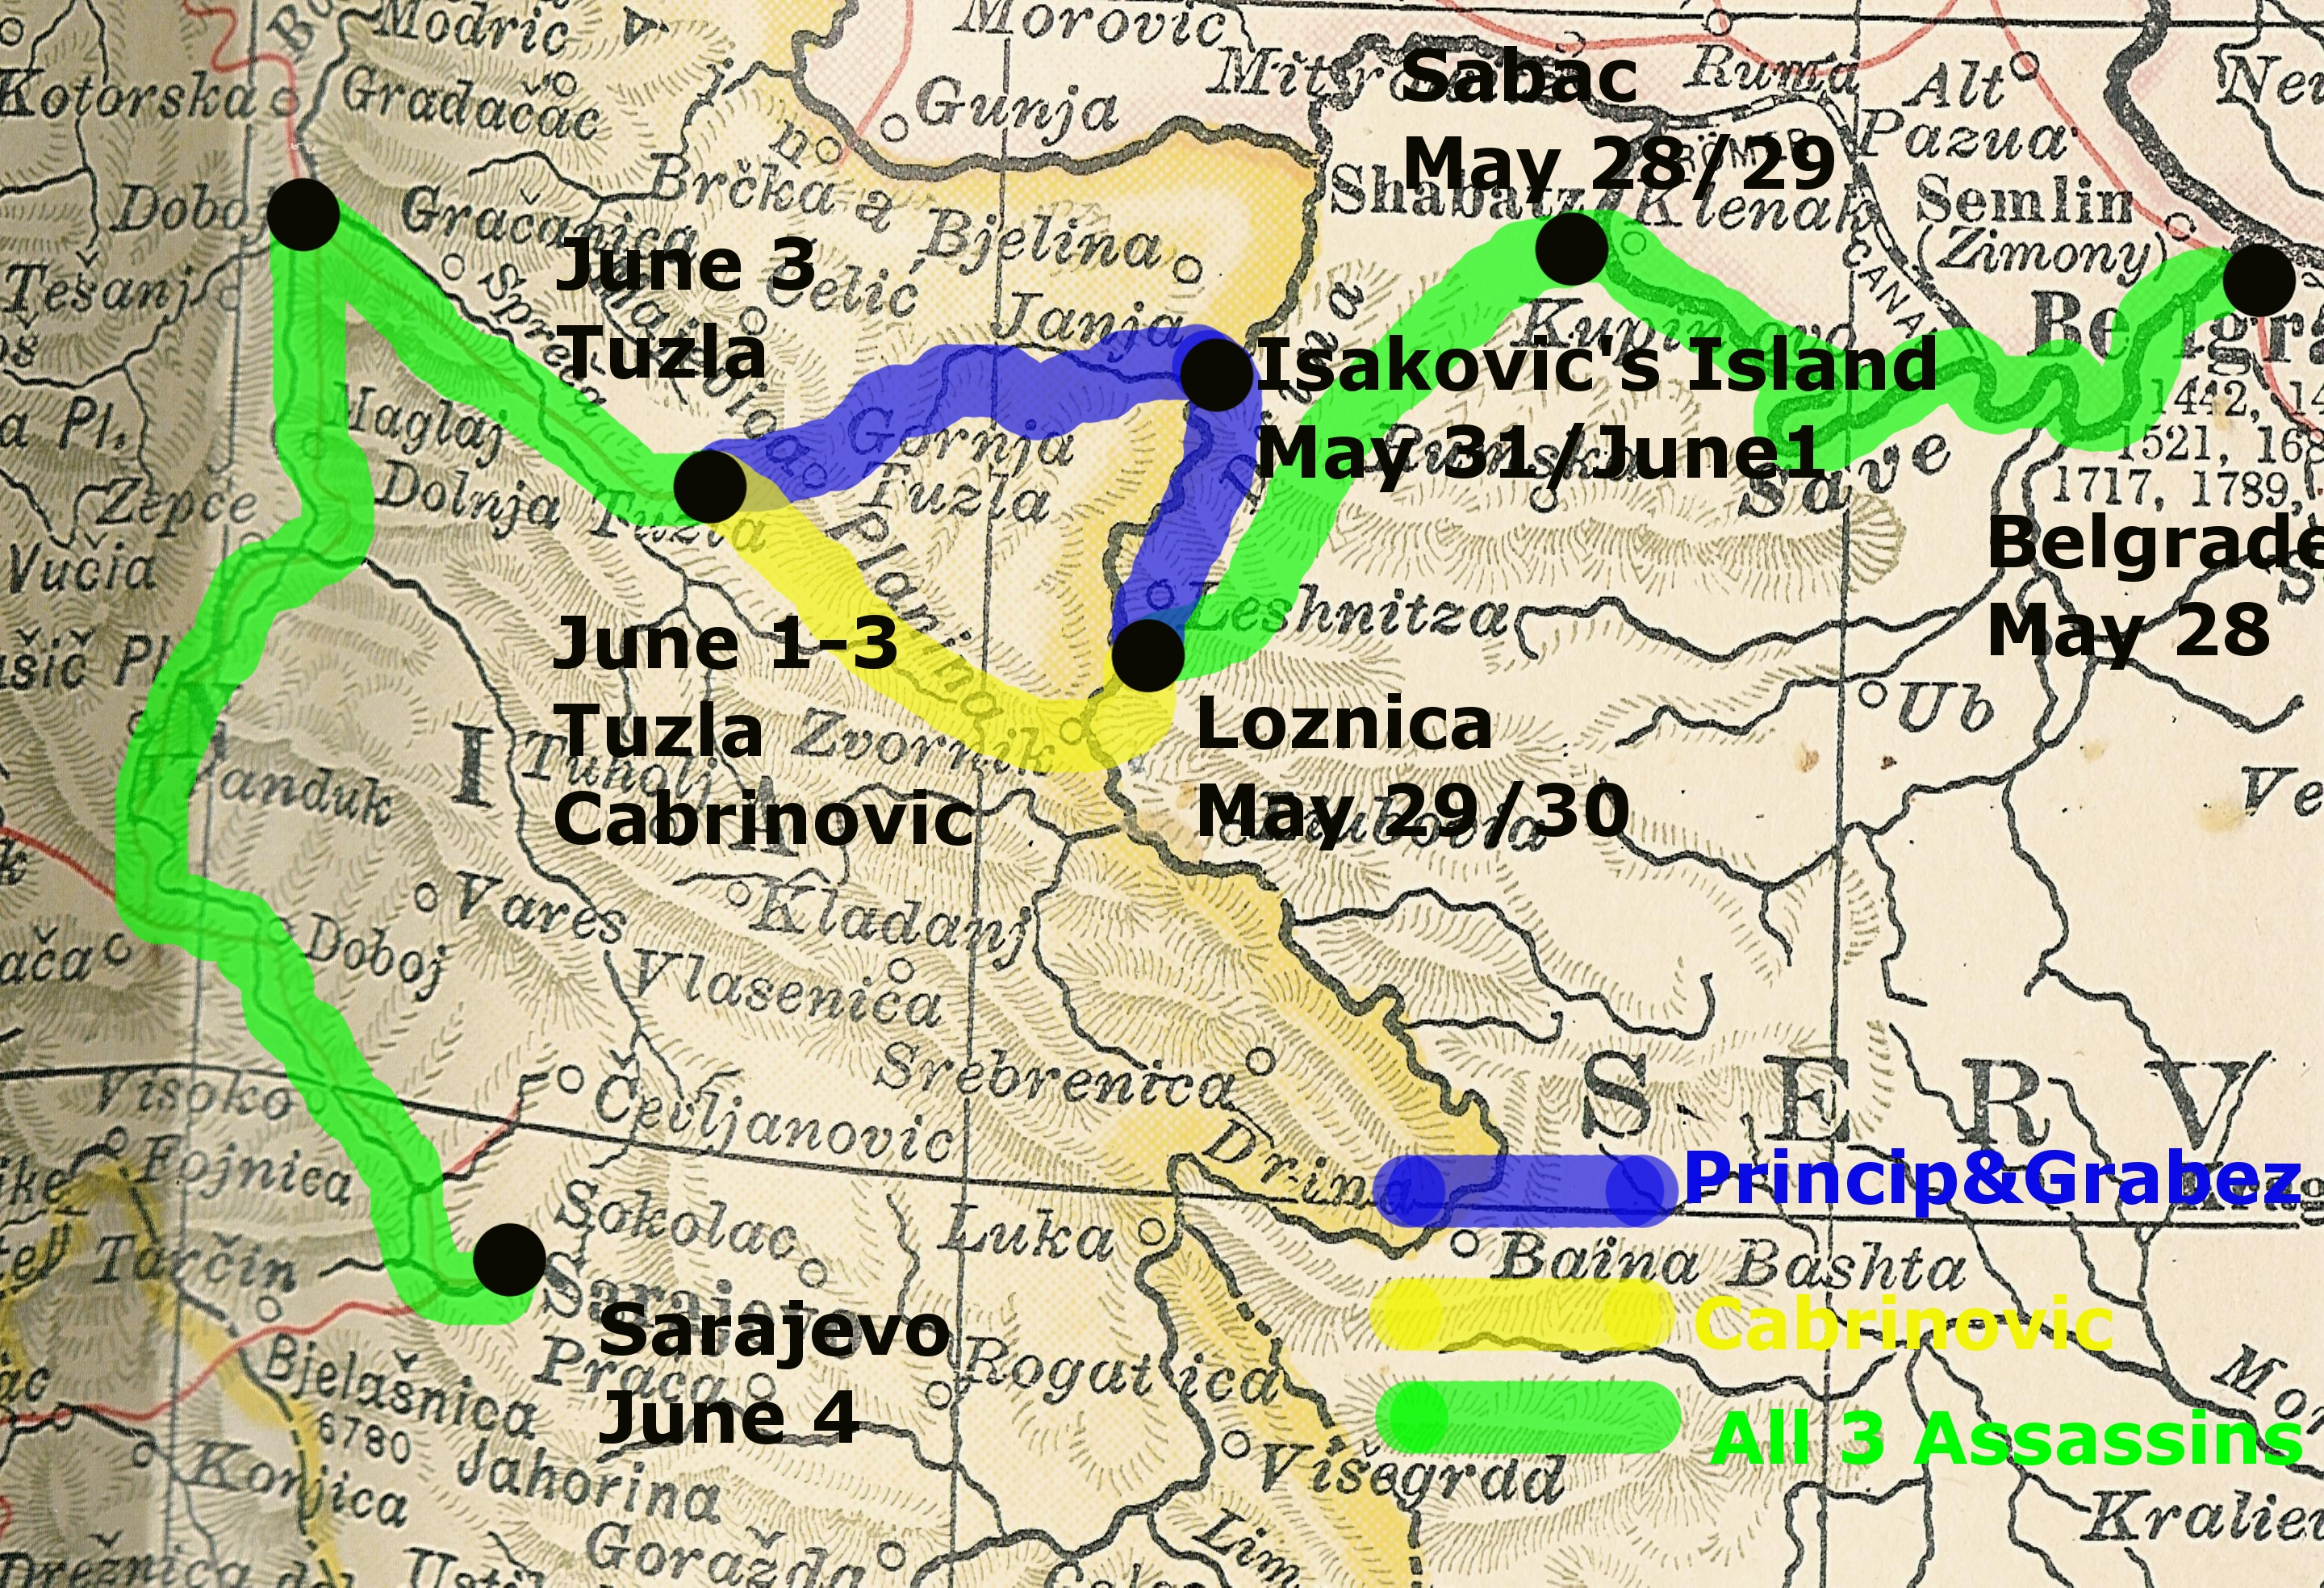 Map showing the route of the assassins to Sarajevo, May-June 1914